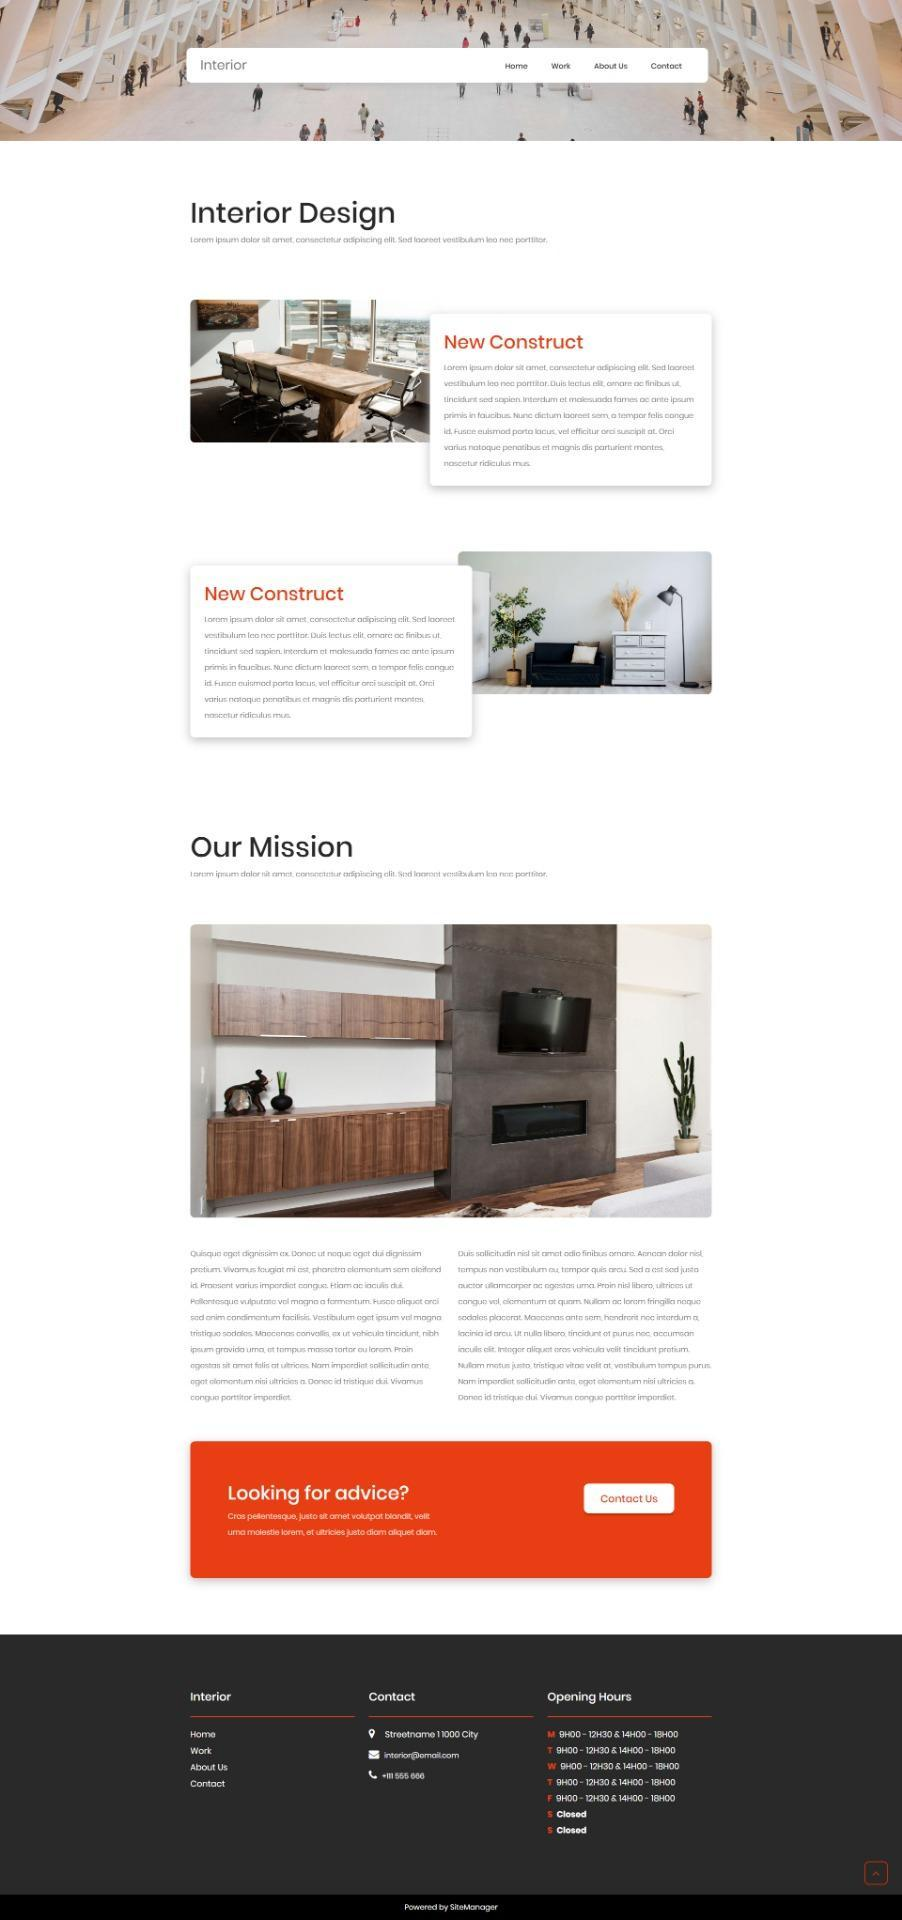 SiteManager Themes - Interior